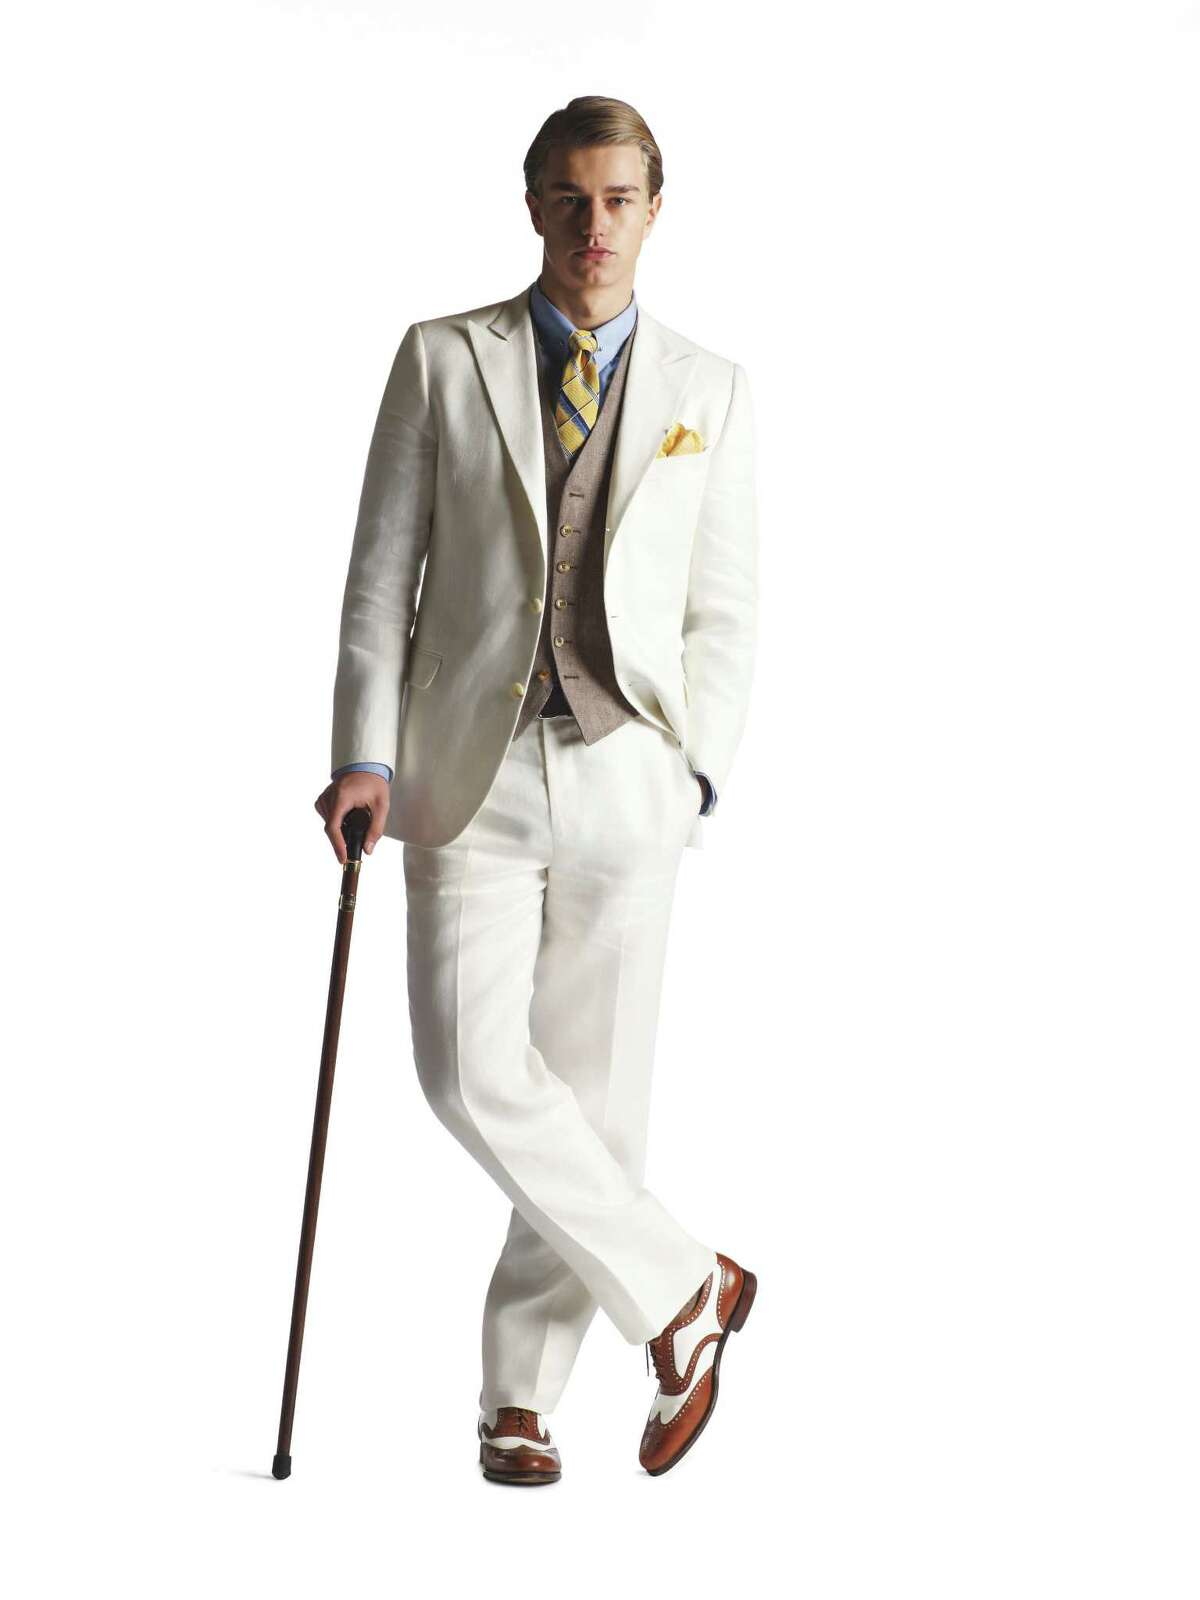 Leo's look: F. Scott Fitzgerald might have dressed his title character in bespoke London threads, but